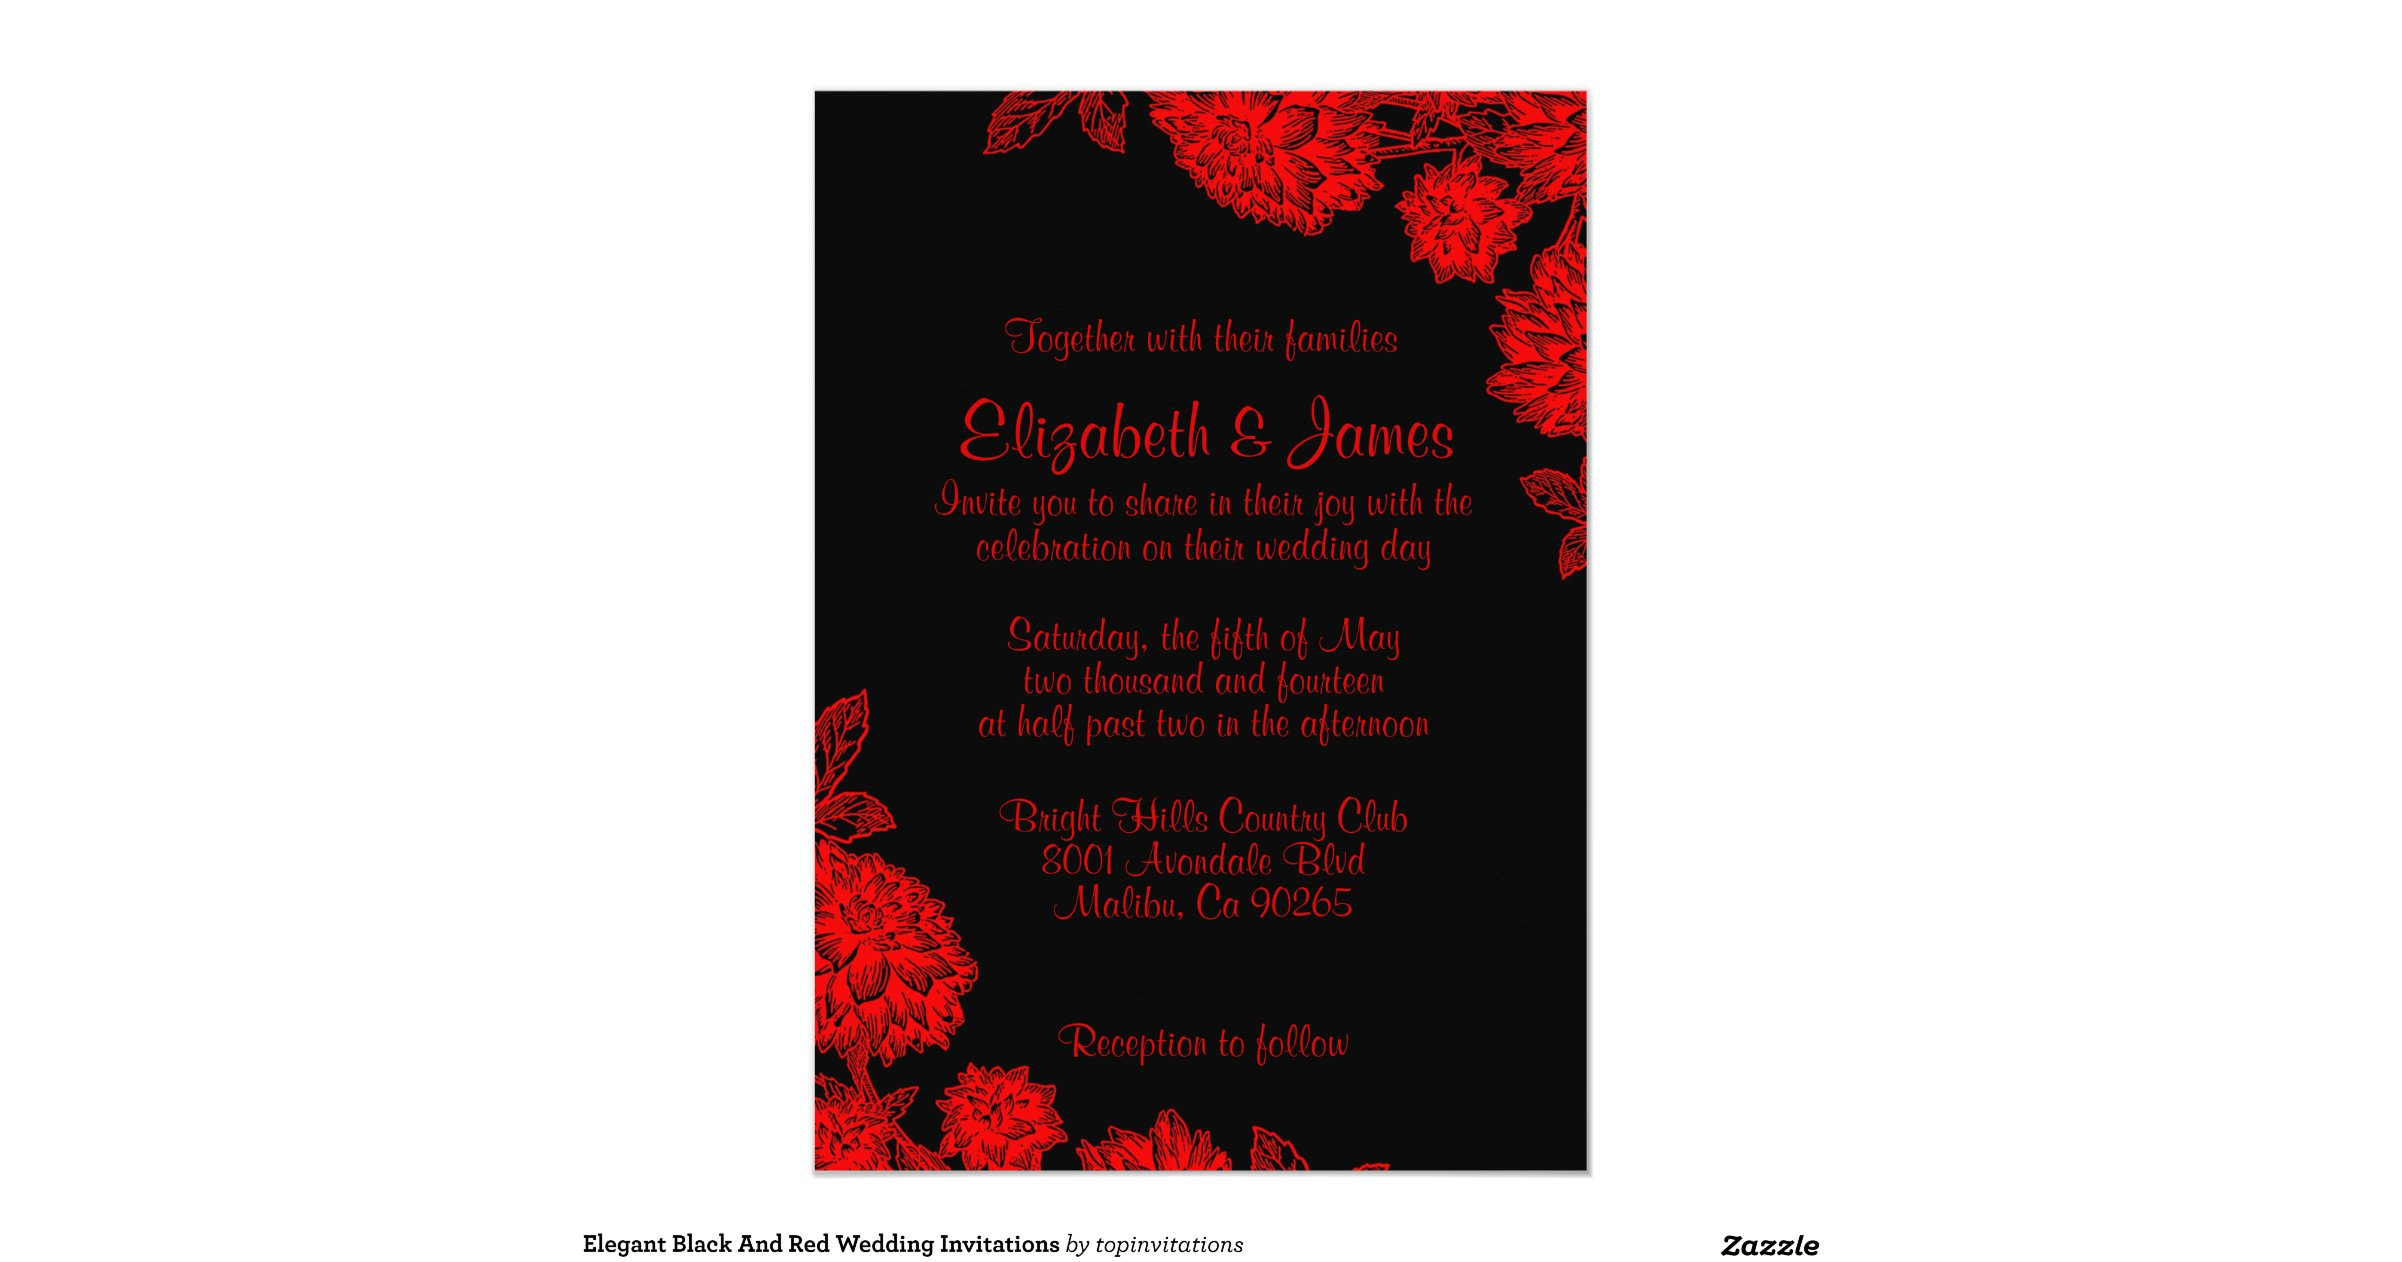 Wedding Invitations Red White And Black: Elegant_black_and_red_wedding_invitations